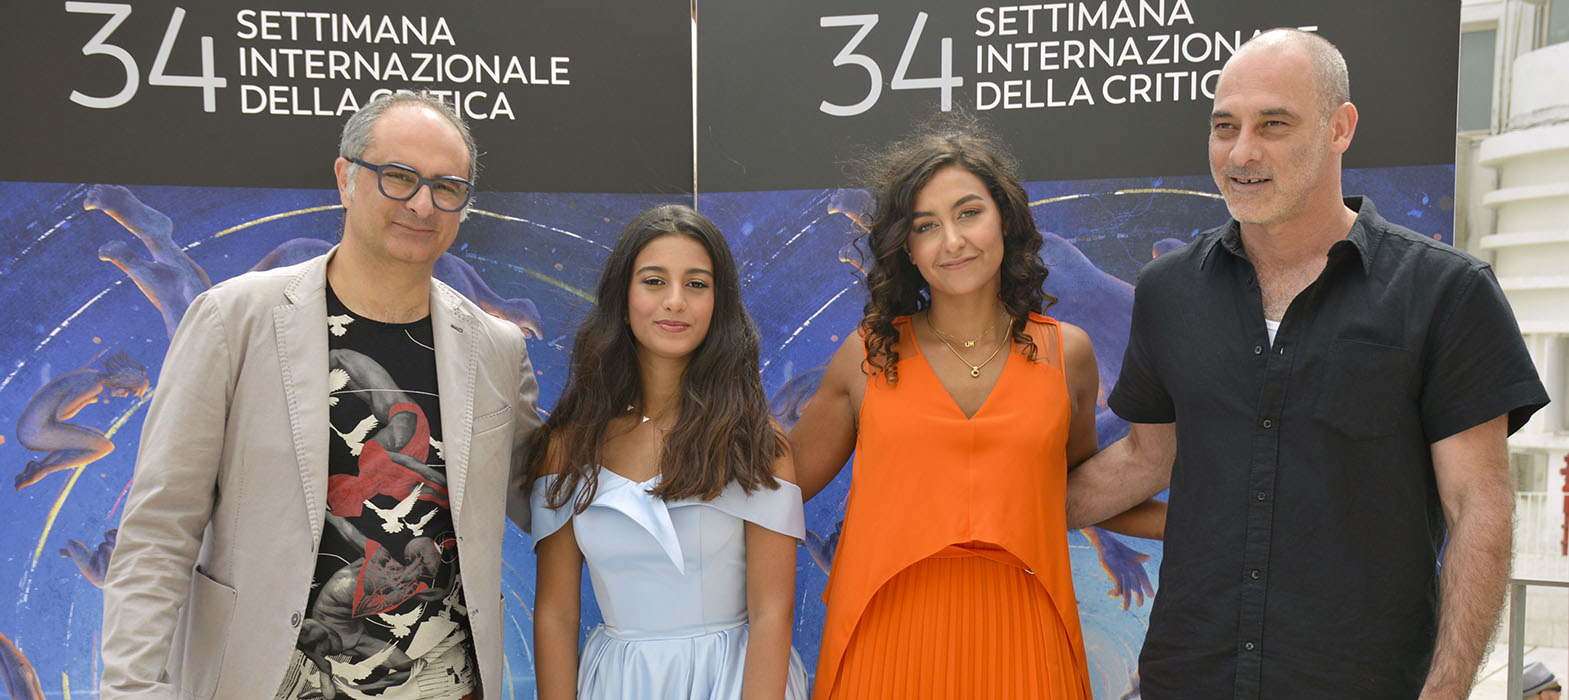 Image Nation Abu Dhabi's newest feature, Scales, successfully premieres at Venice International Film Festival Critics' Week